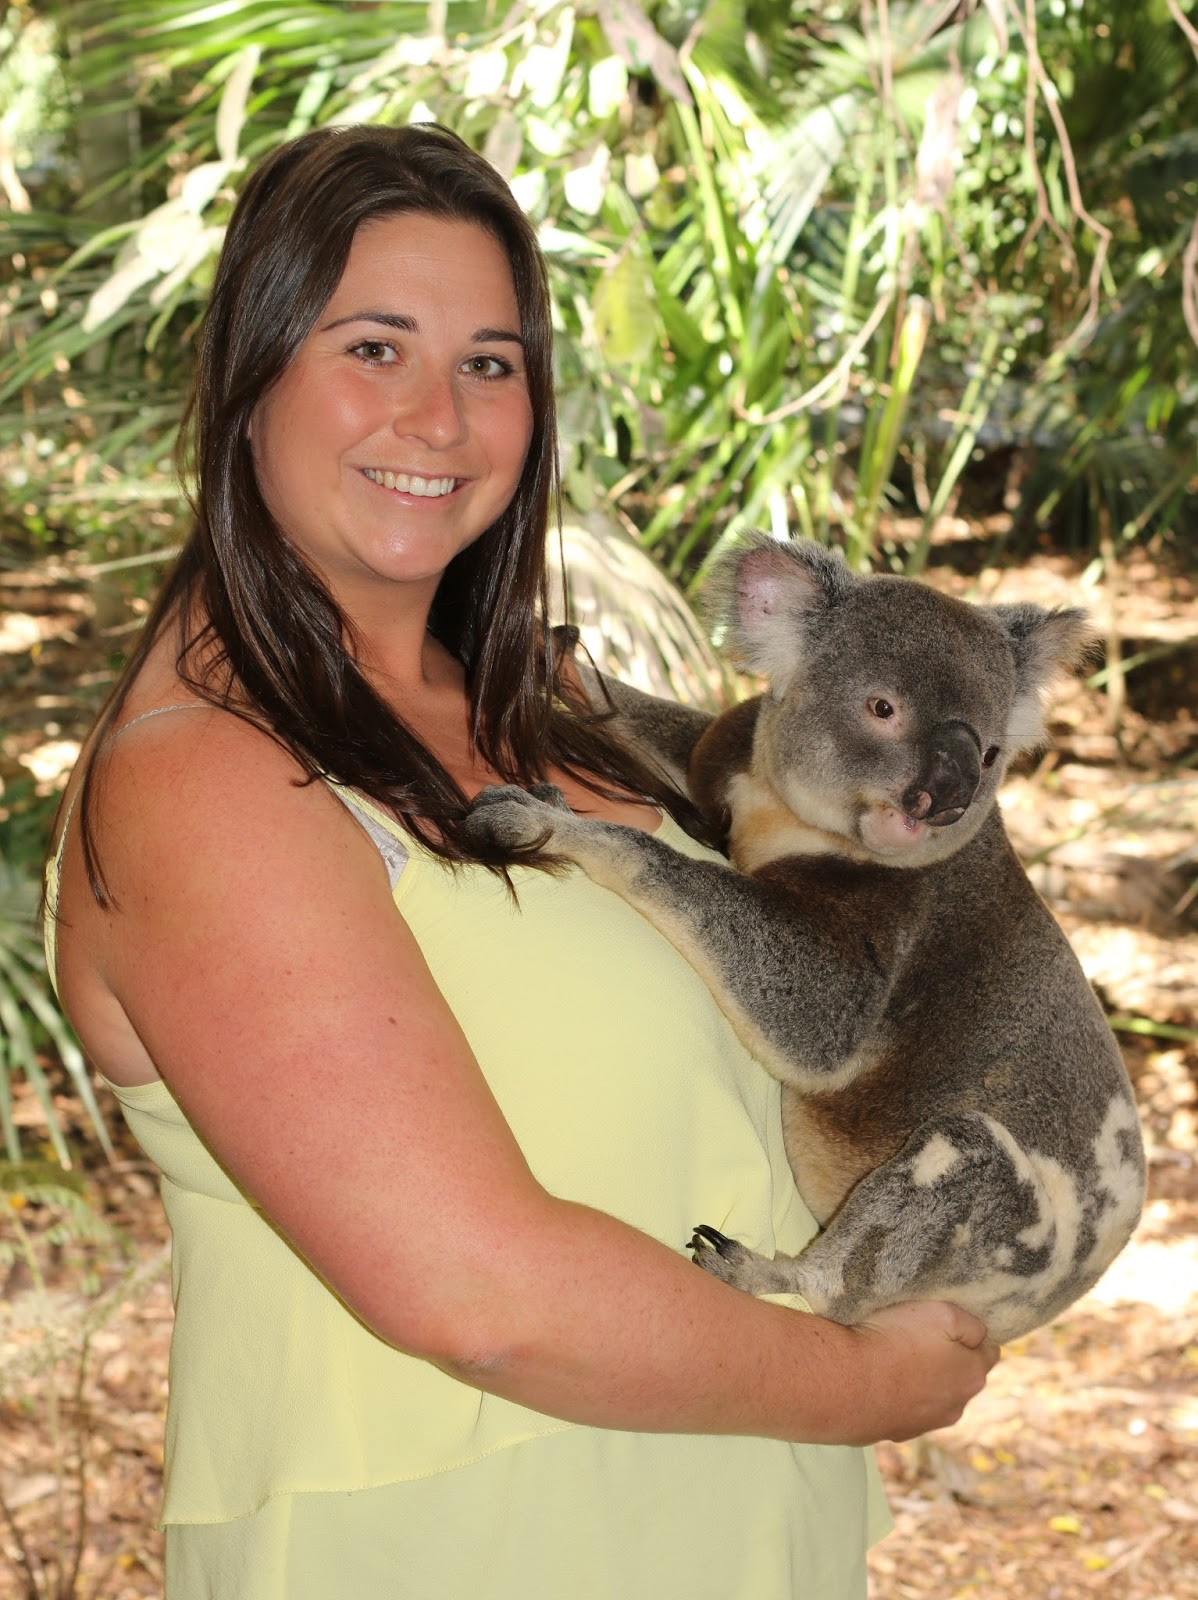 The Aussie Flashpacker cuddling a koala at Lone Pine Koala Sanctuary